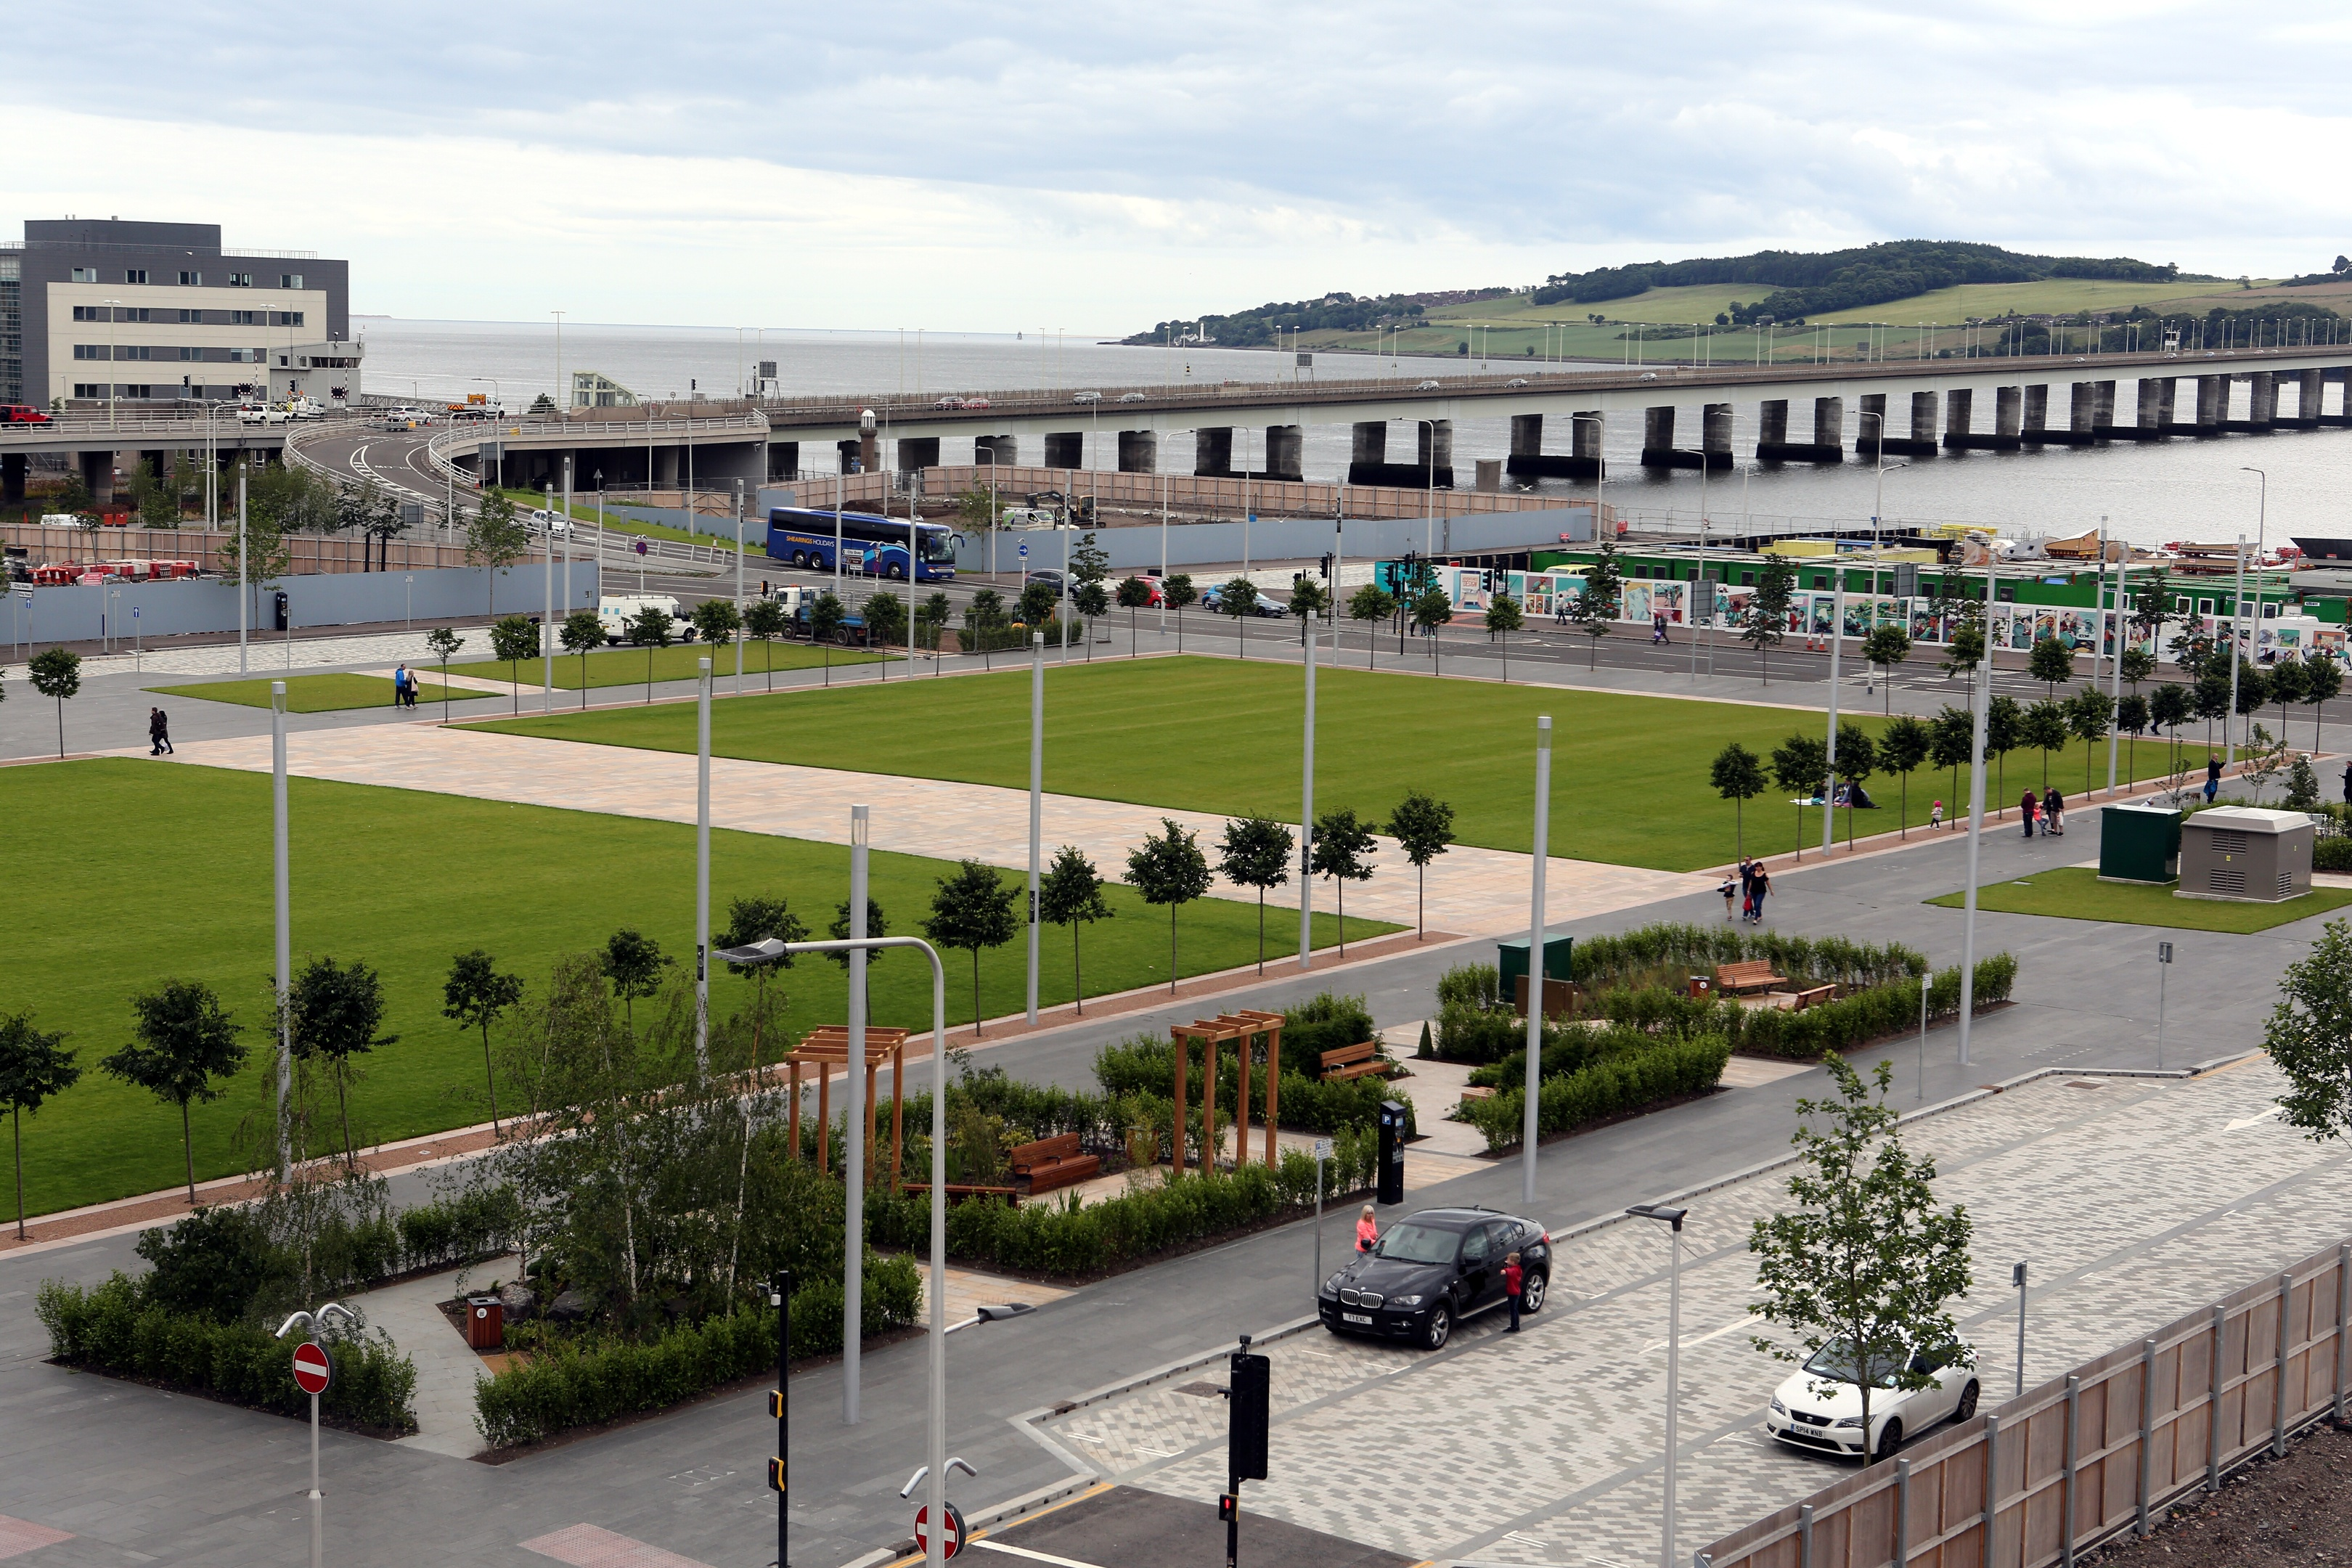 Slessor Gardens, which will host three concerts this summer